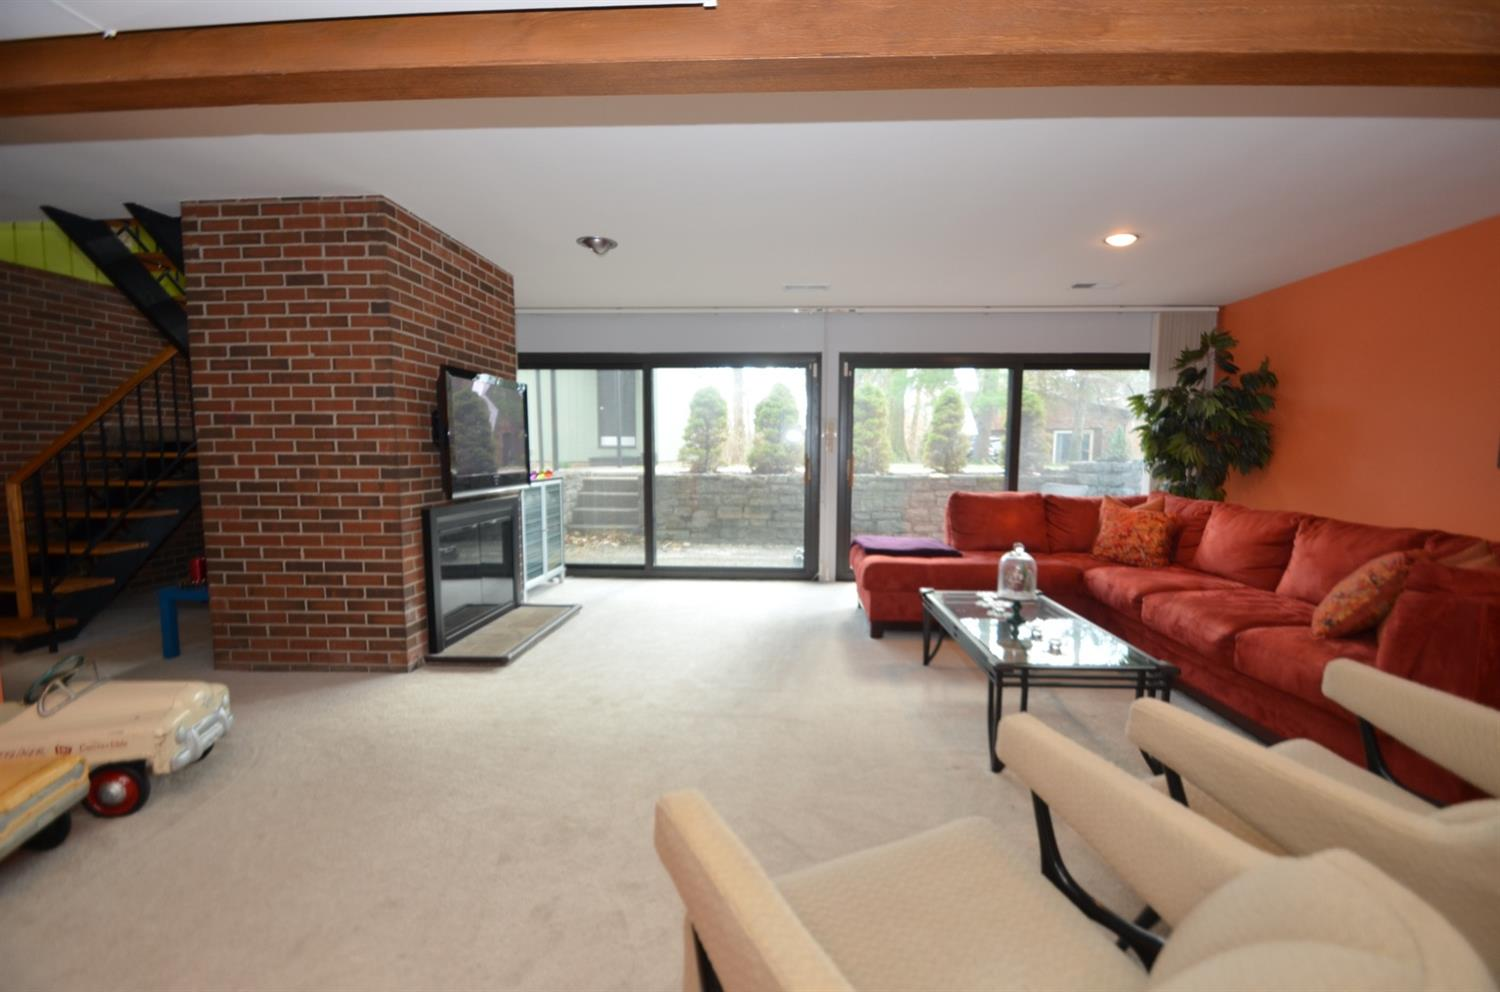 LL family room has another WOOD BURNING FIREPLACE (total of 2) and multiple walkouts to the front patio.